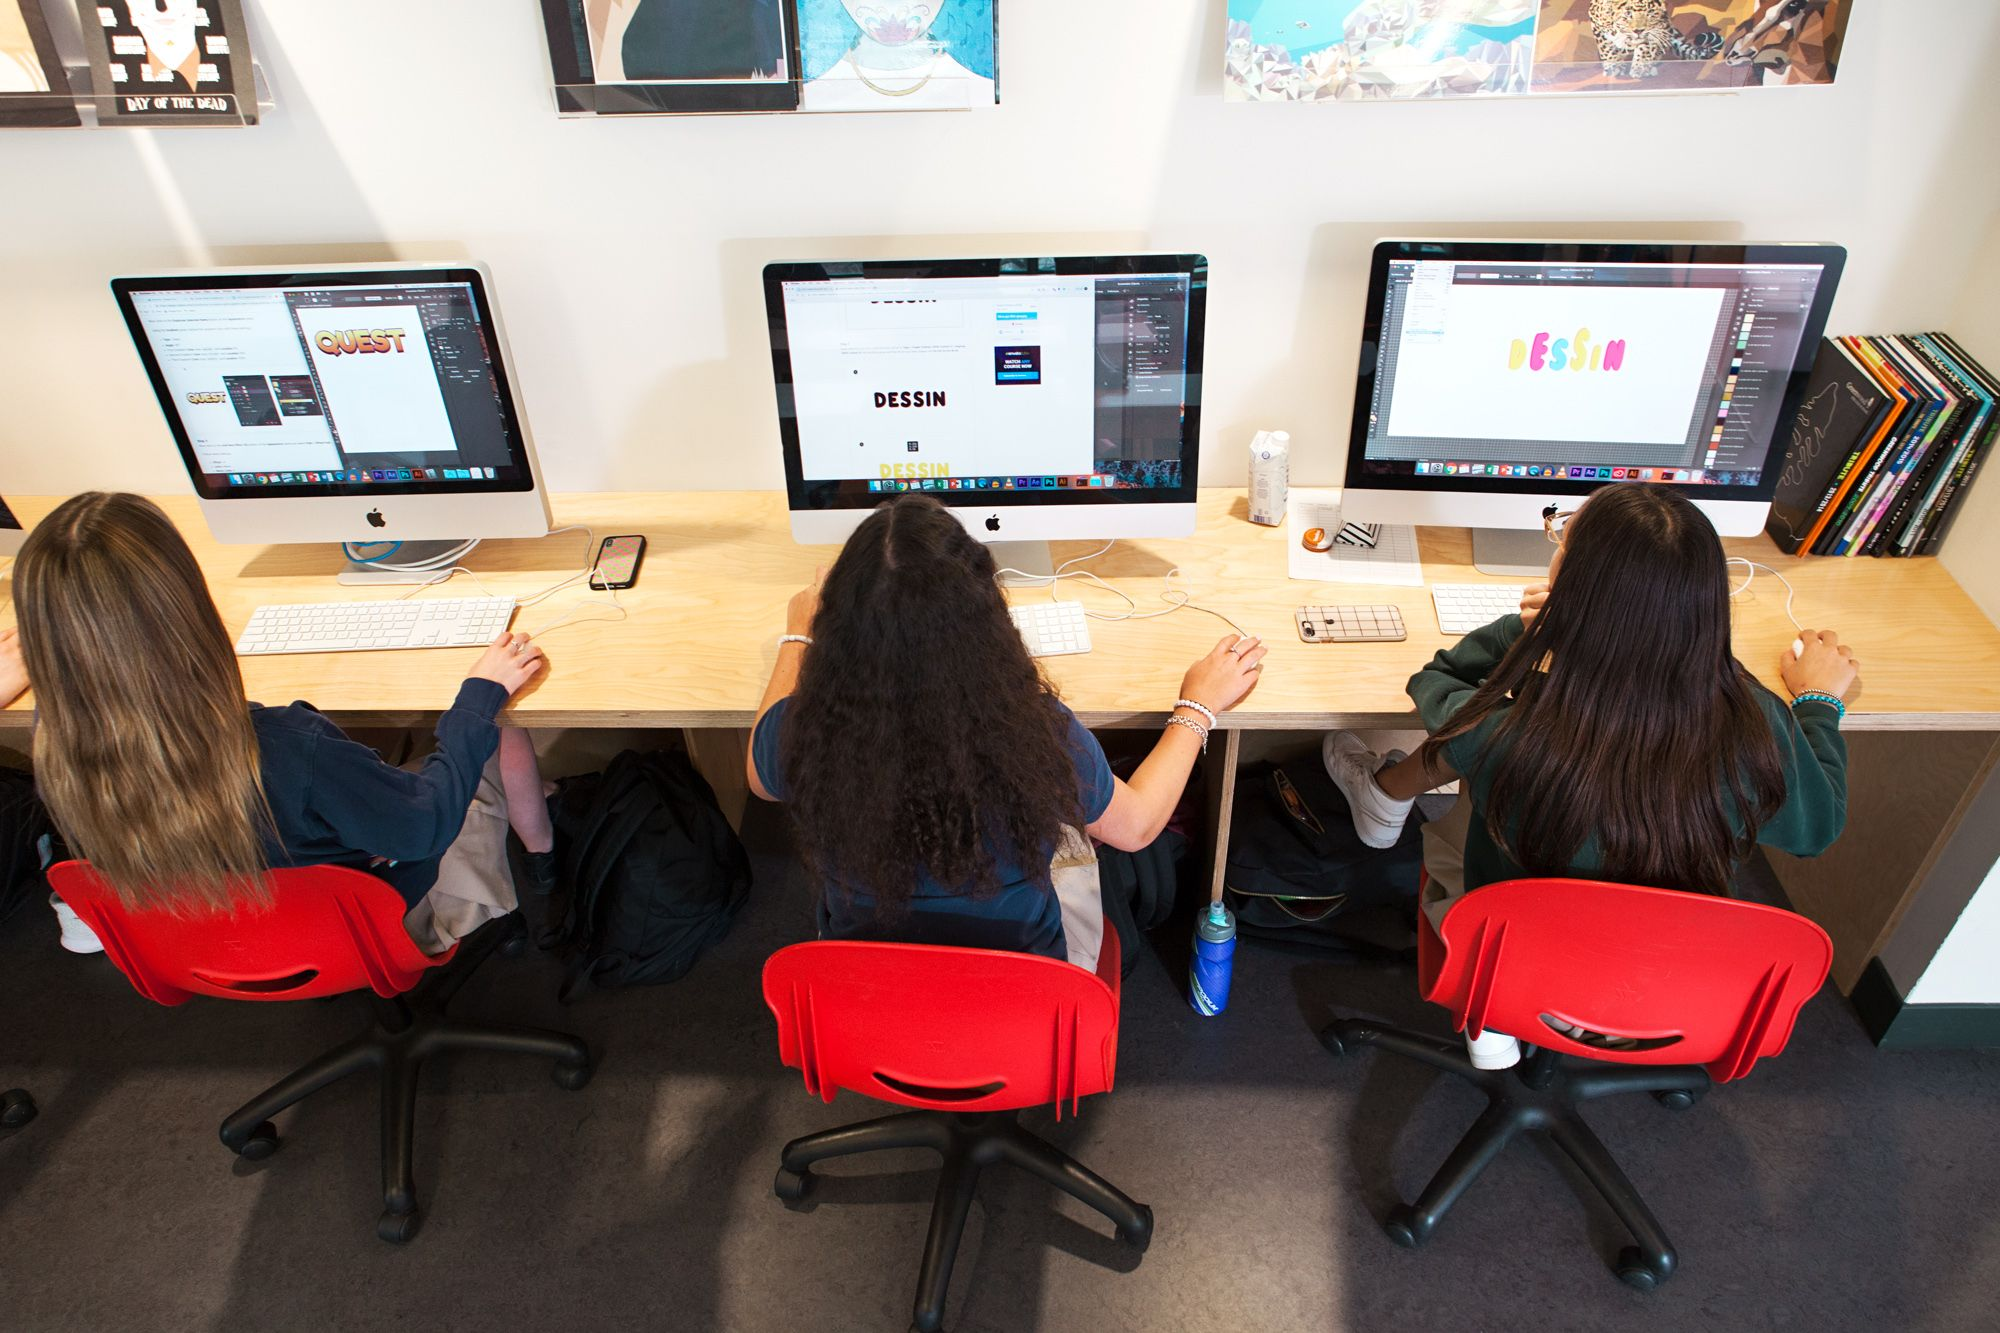 The thoughtful design of our media arts space, combined with the latest technology, plays a big role in fostering students' creativity.